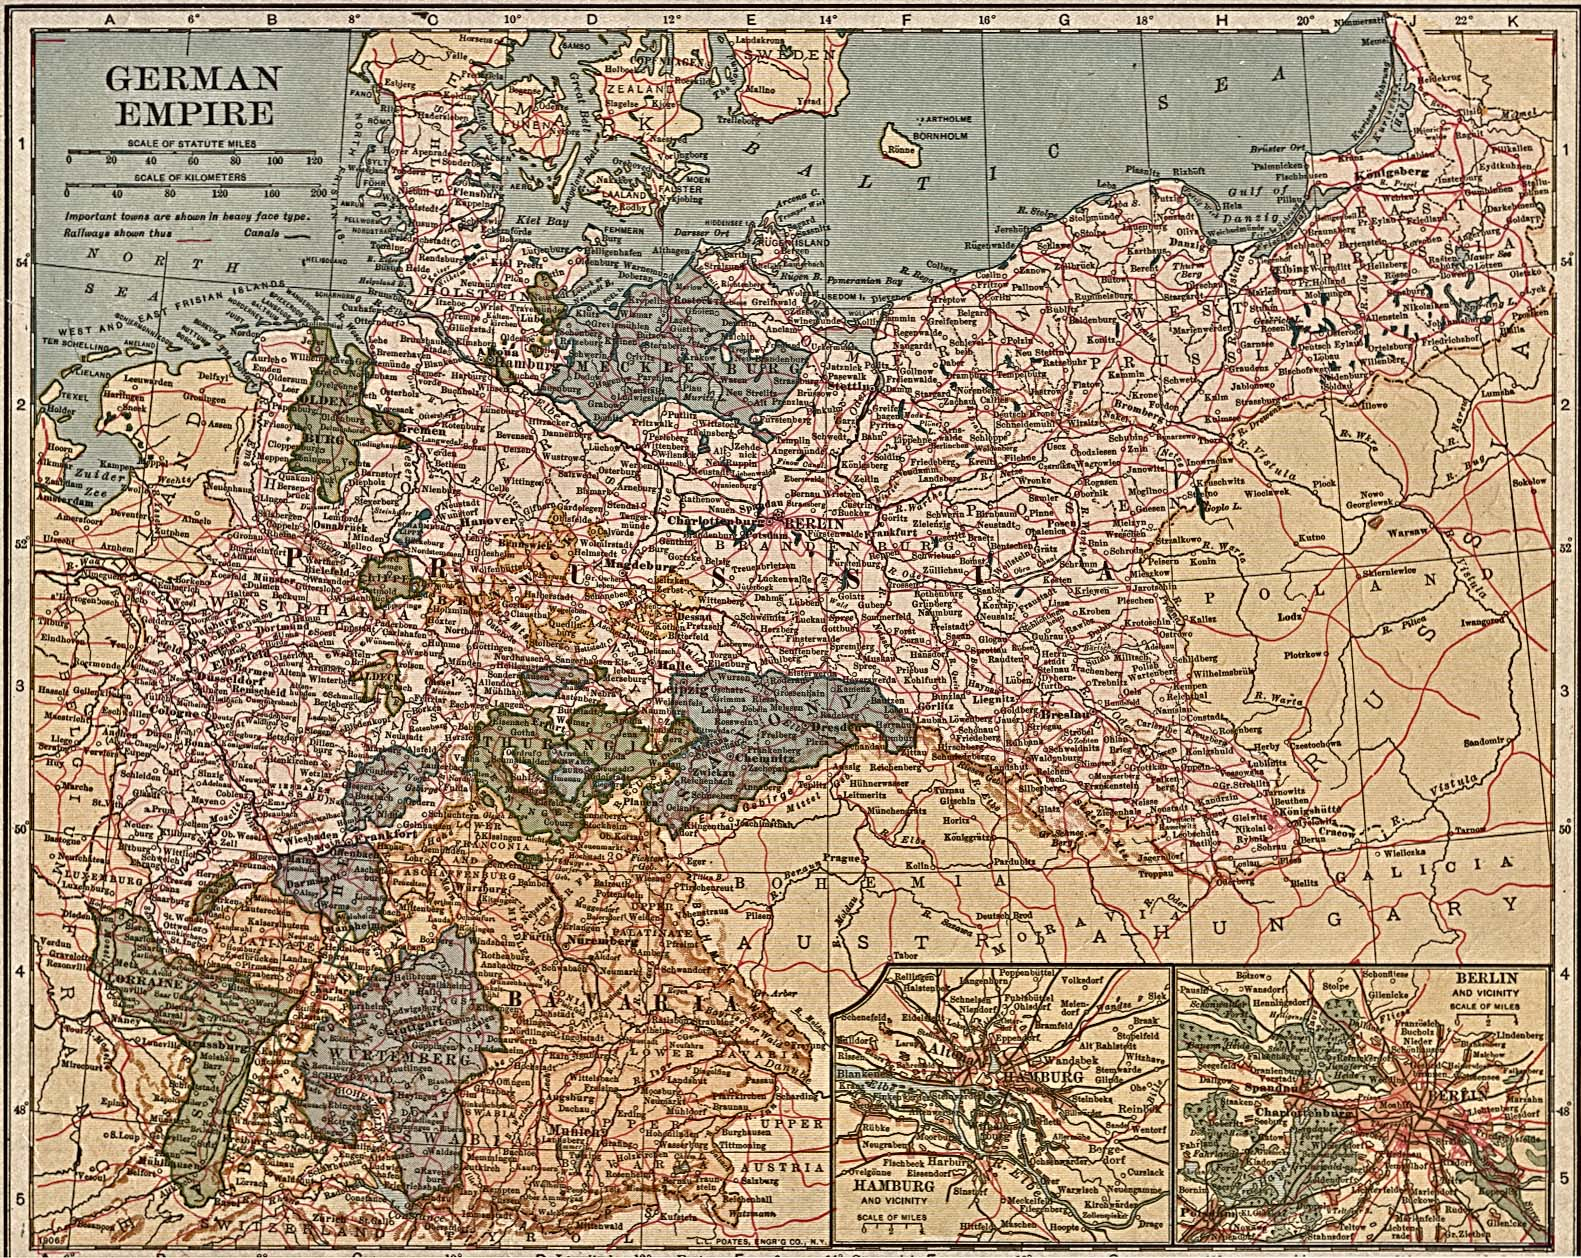 Map Of Germany Throughout History.Whkmla Historical Atlas Germany Page